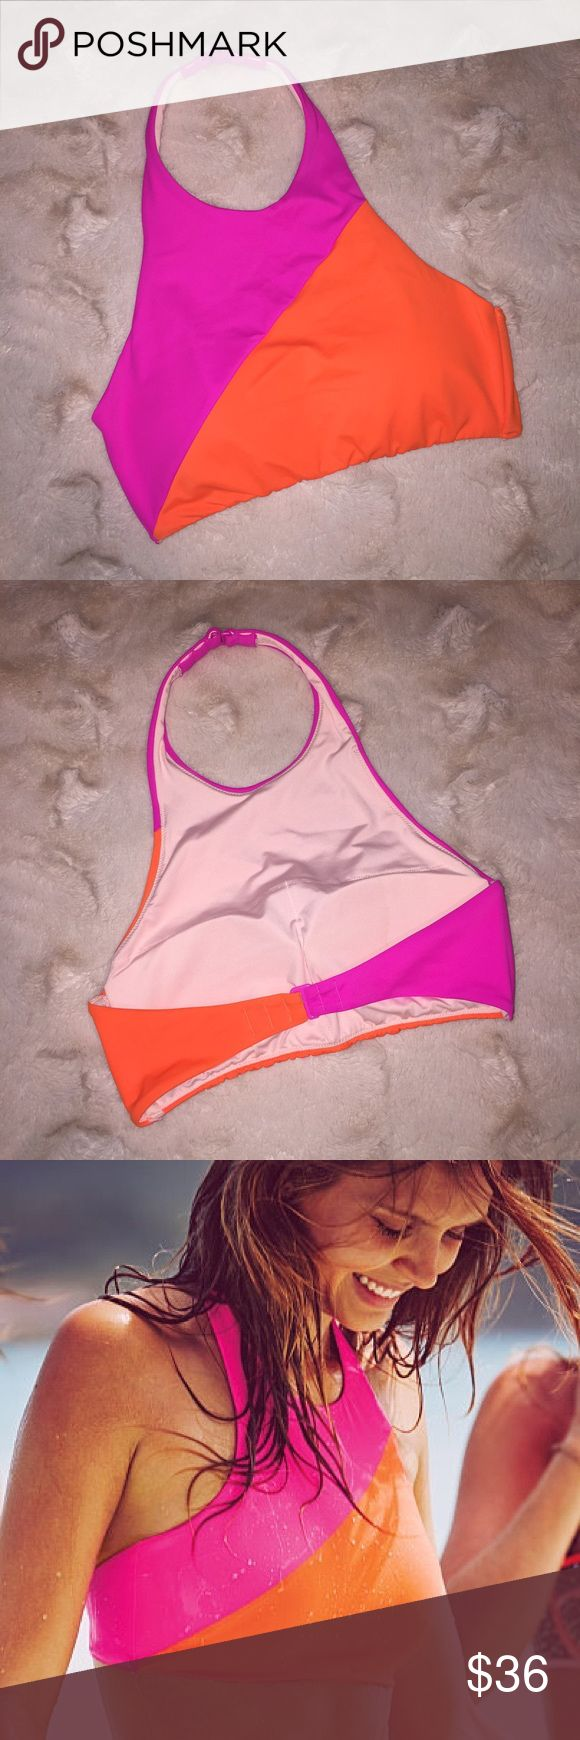 Colorblock High-Neck Top (Neon Lotus/Aloha Orange) Style: Colorblock High-Neck Swim Crop   Discount offered on all bundles! 🙌🏻   Please use the offer button (I will not negotiate prices in listing comments).   🚫 NO TRADES! 🚫  *Stock photos show example of style only. Actual picture and color of item is shown in 1st photo.   Related: VS, VSX, Victoria's Secret, PINK, Swim, Bikini, Bathing Suit, Beachwear, Swimwear, Two Piece, Follow Me, Follow Game Victoria's Secret Swim Bikinis